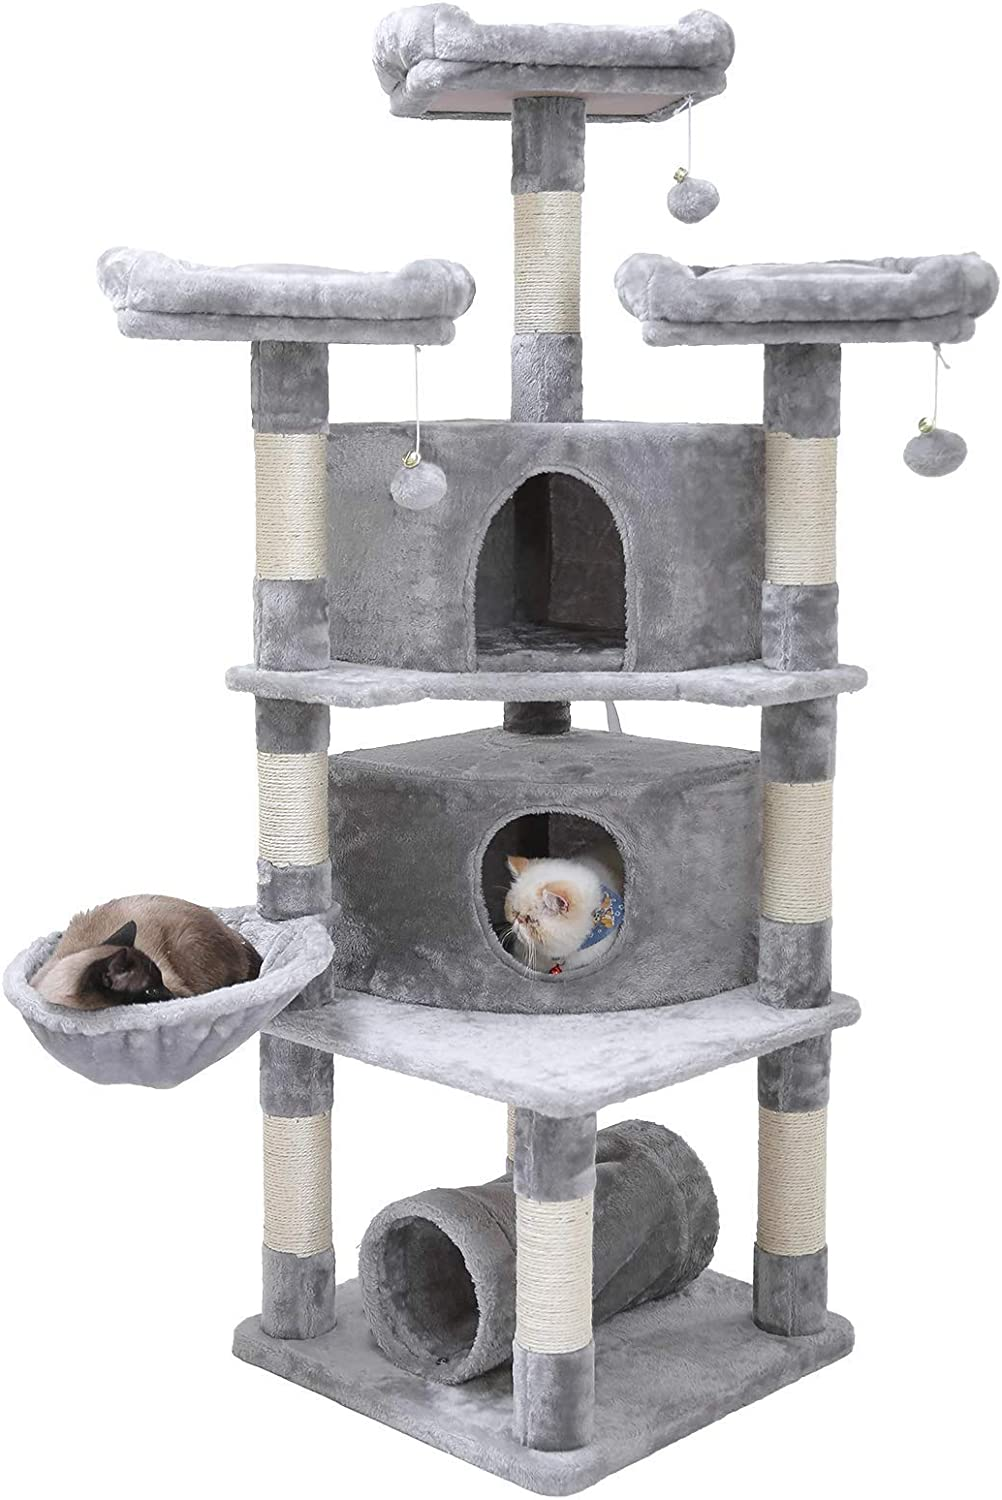 "Hey-bro 65"" Extra Large Multi-Level Cat Tree Condo Furniture with Sisal-Covered Scratching Posts, 2 Bigger Plush Condos, Perch Hammock for Kittens,..."